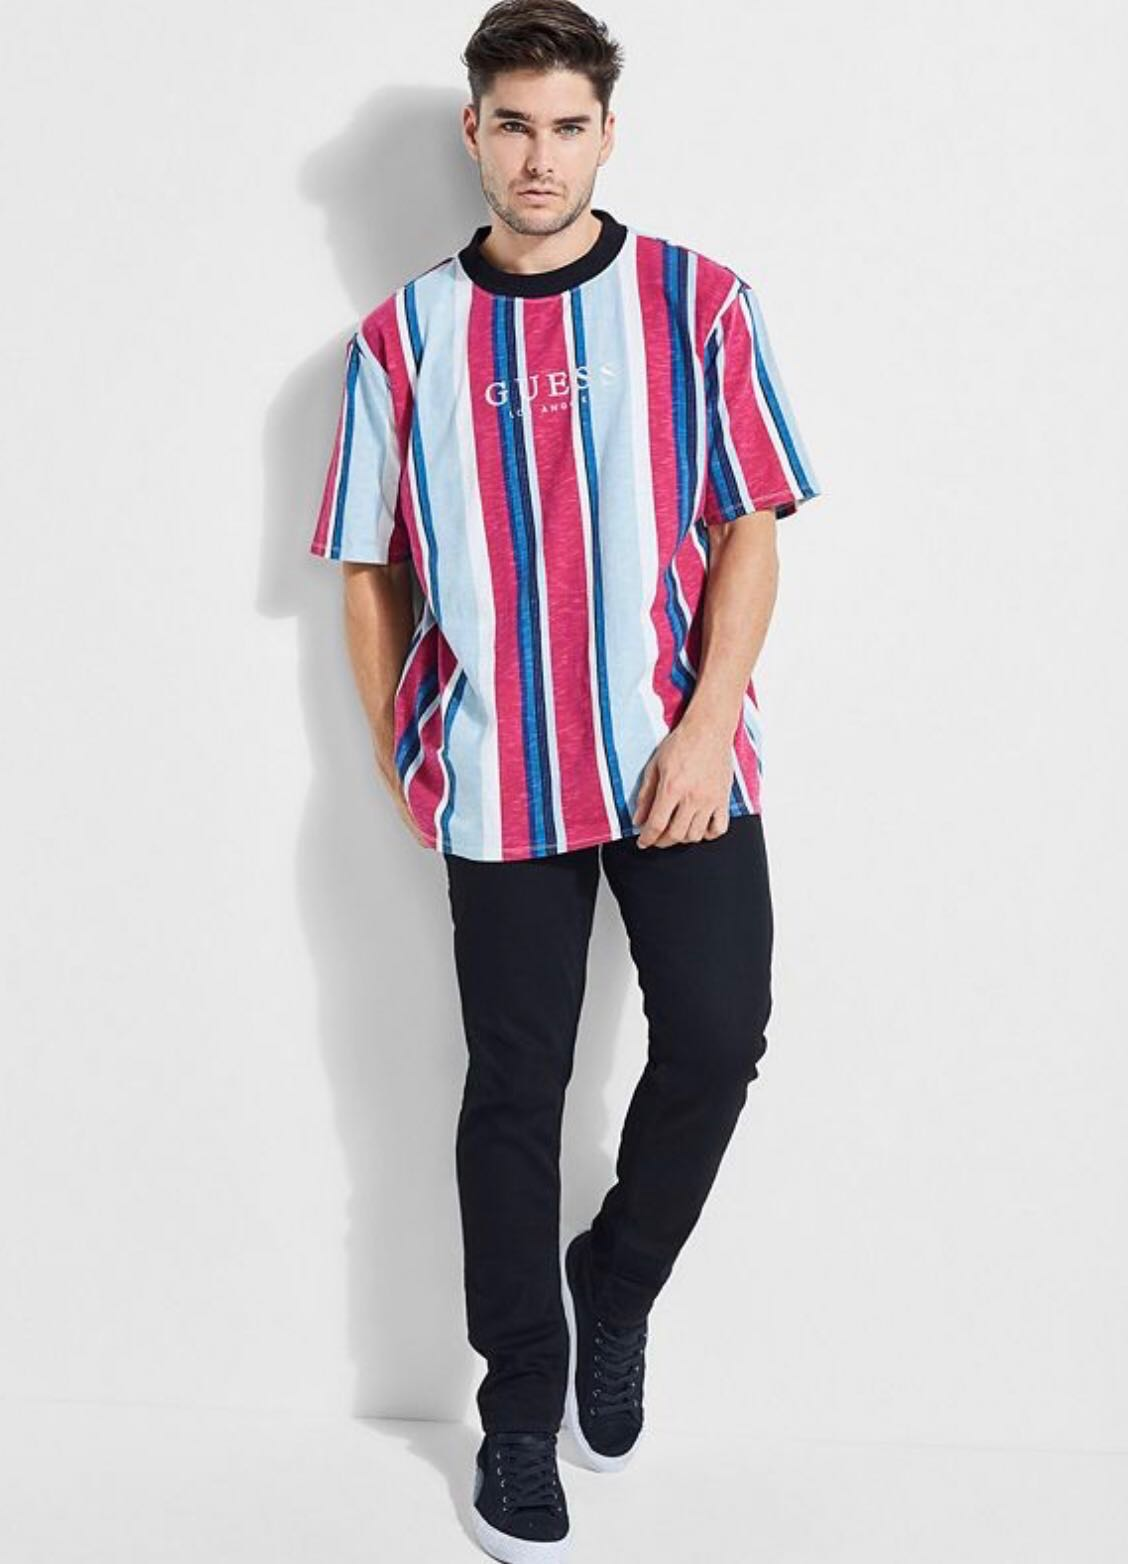 0765cbd773 Guess David Sayer Striped Tee, Men's Fashion, Clothes, Tops on Carousell